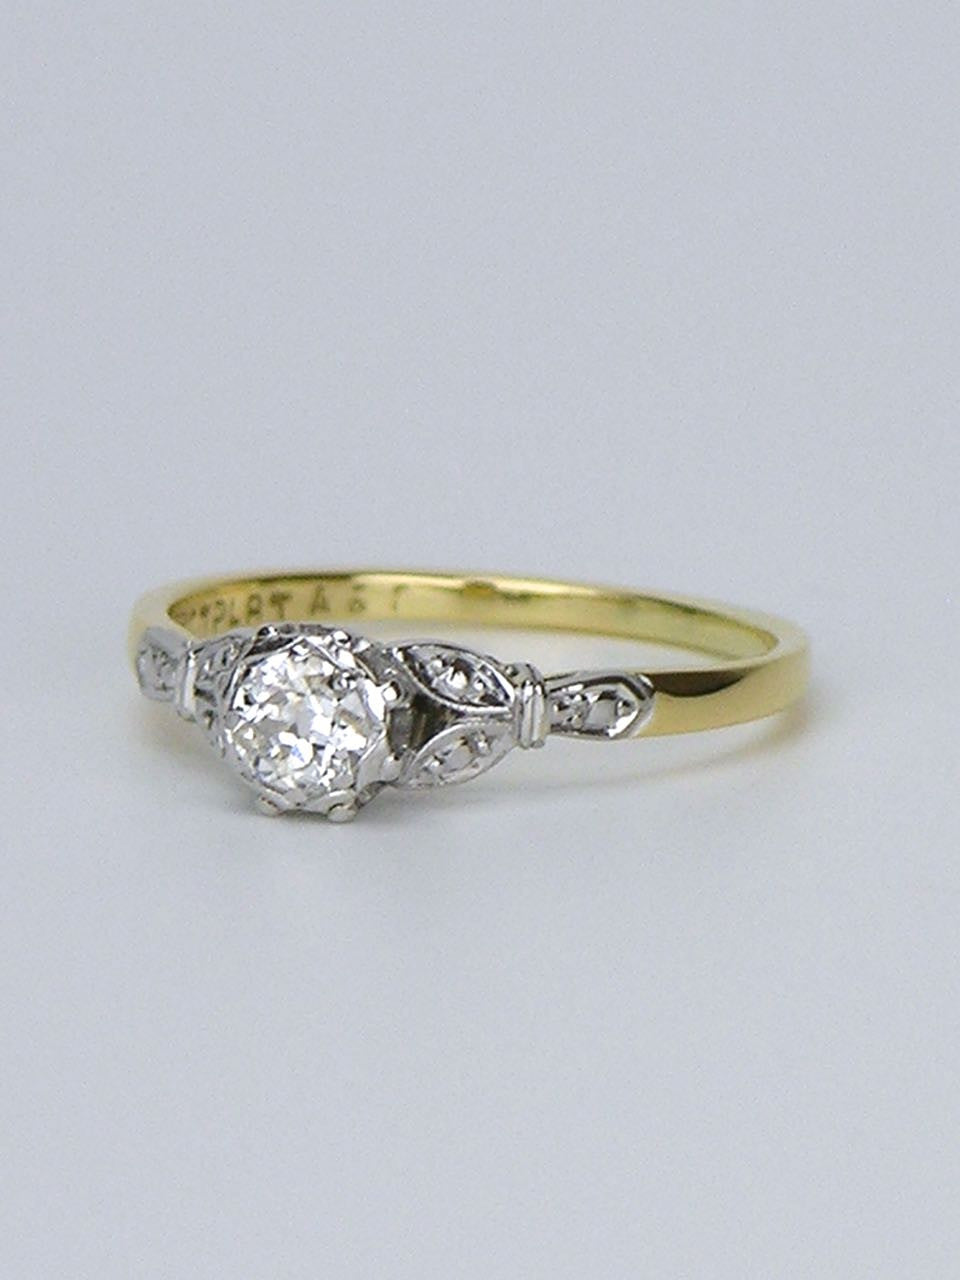 18k white and yellow gold diamond ring - 1950s